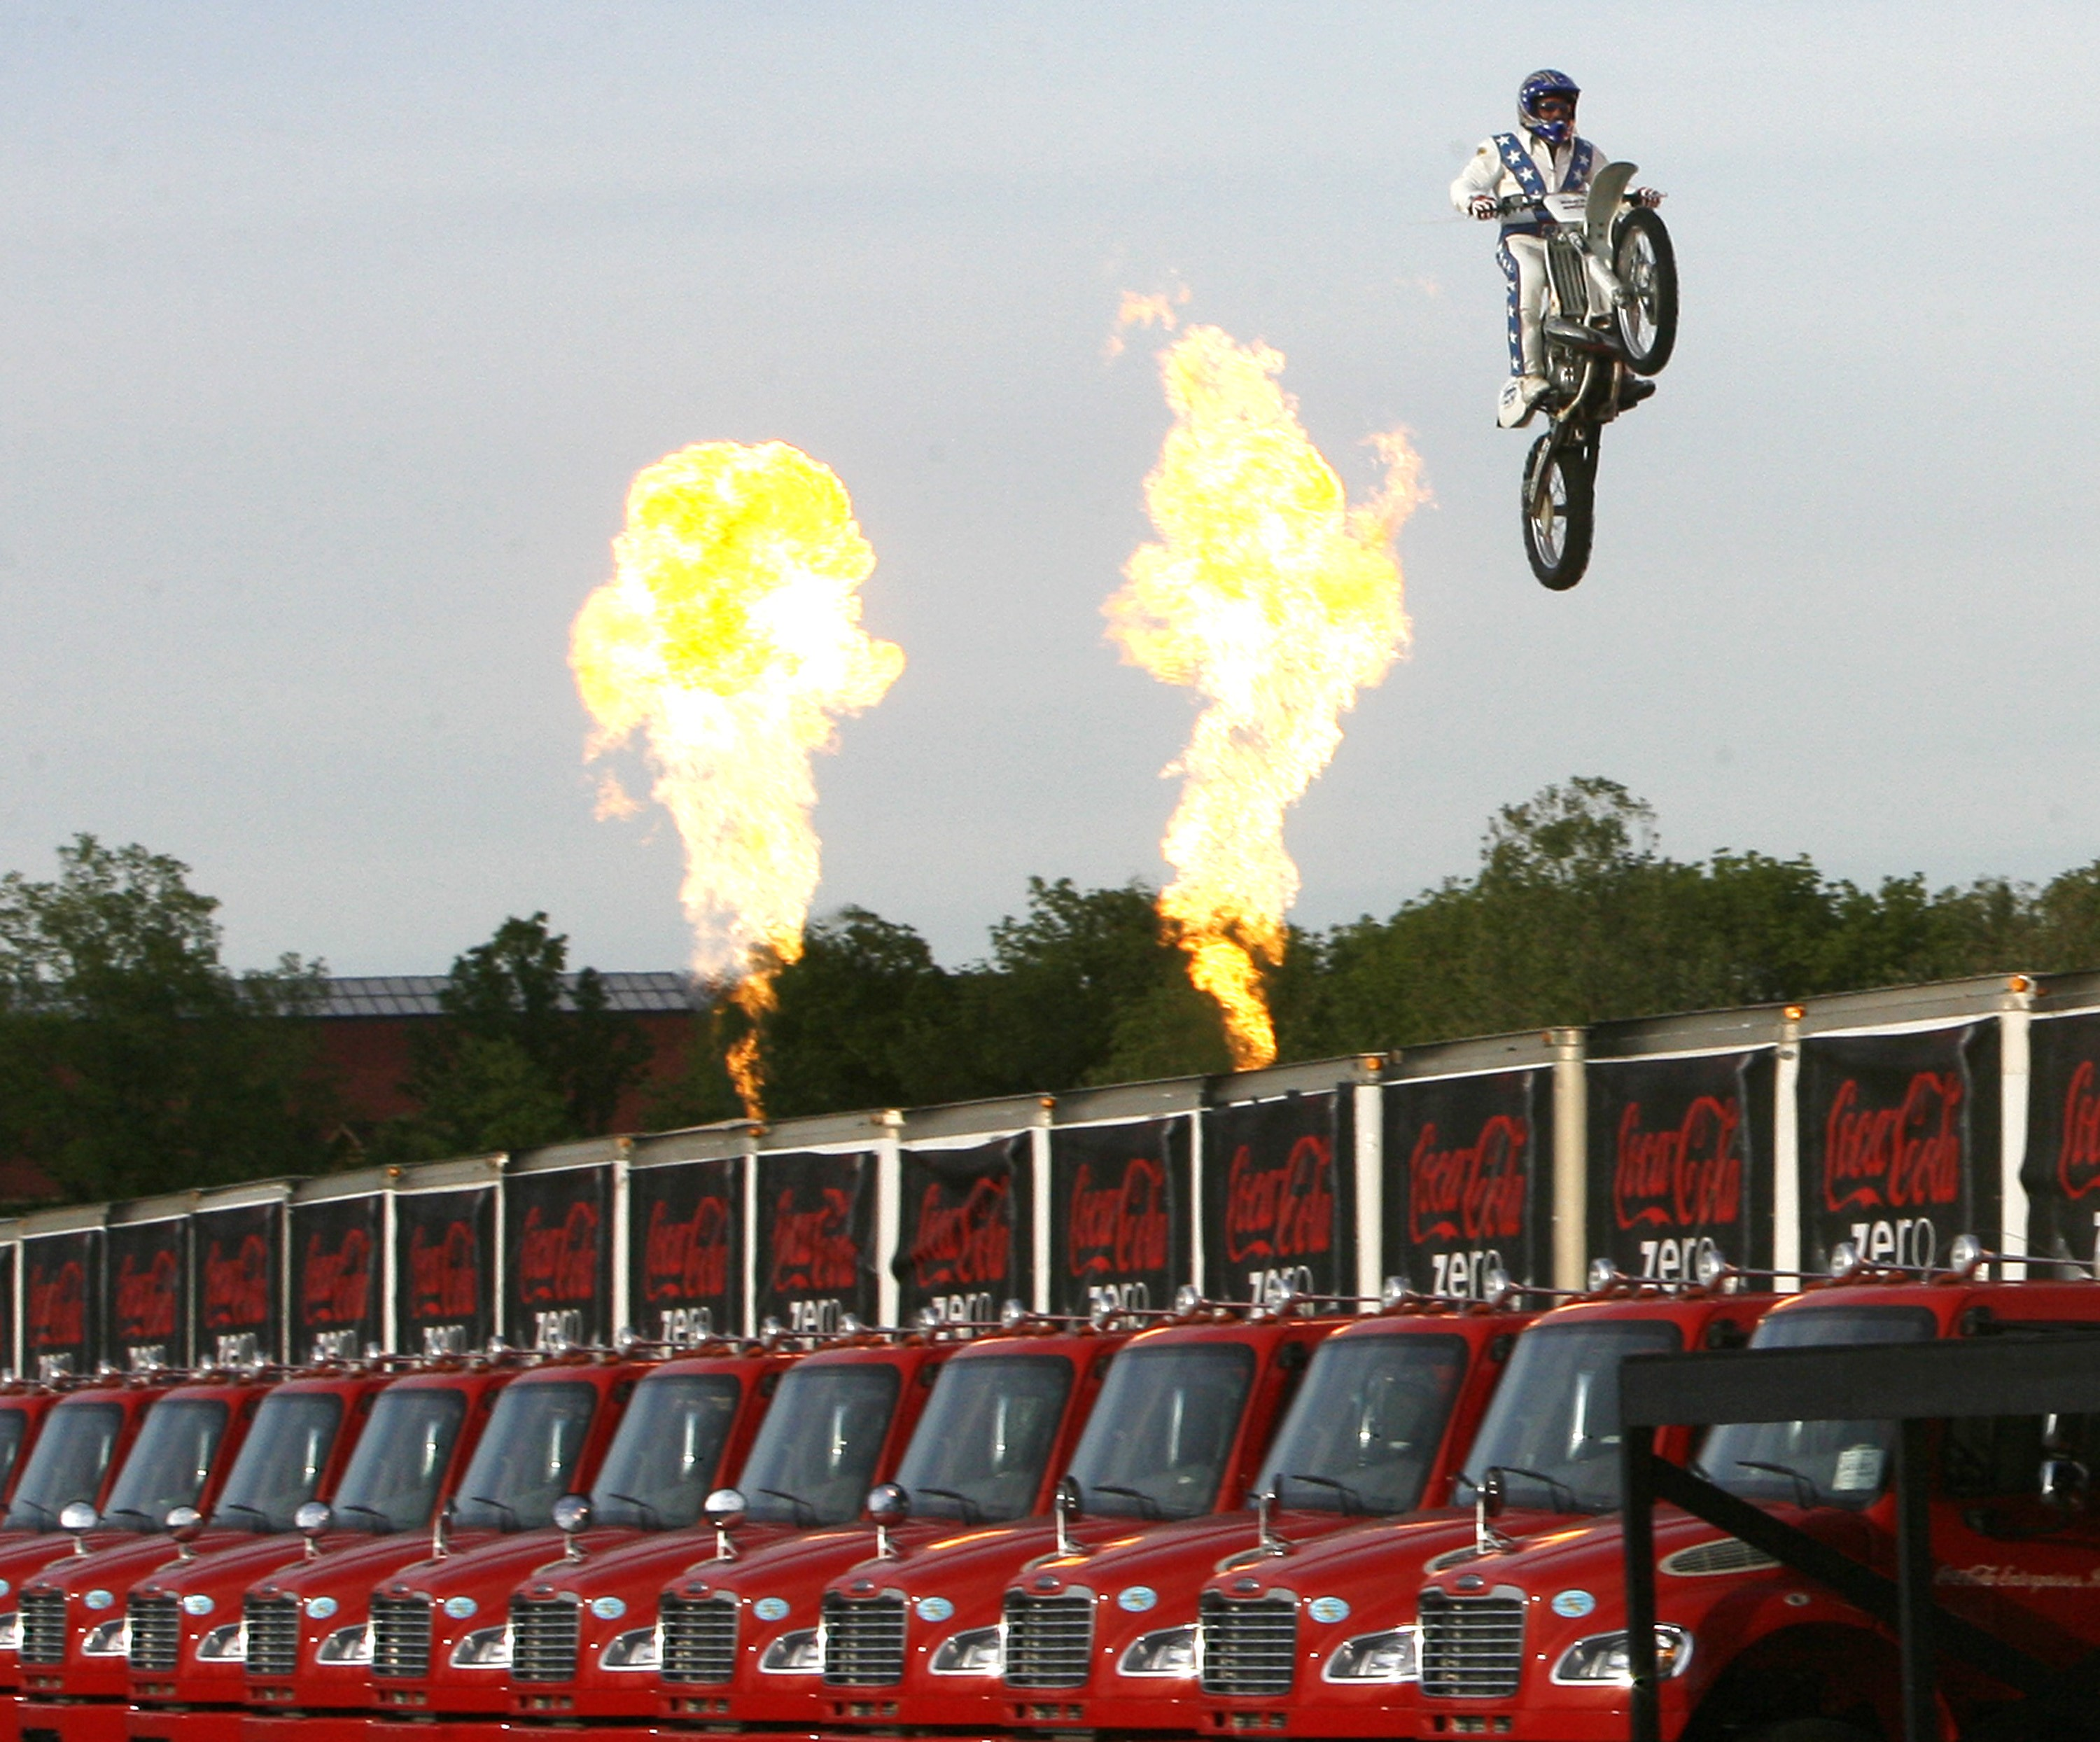 Evel Knievel Motorcycle Daredevil Jumper On His Harley: Younger Knievel's Jump Over Snake Delayed